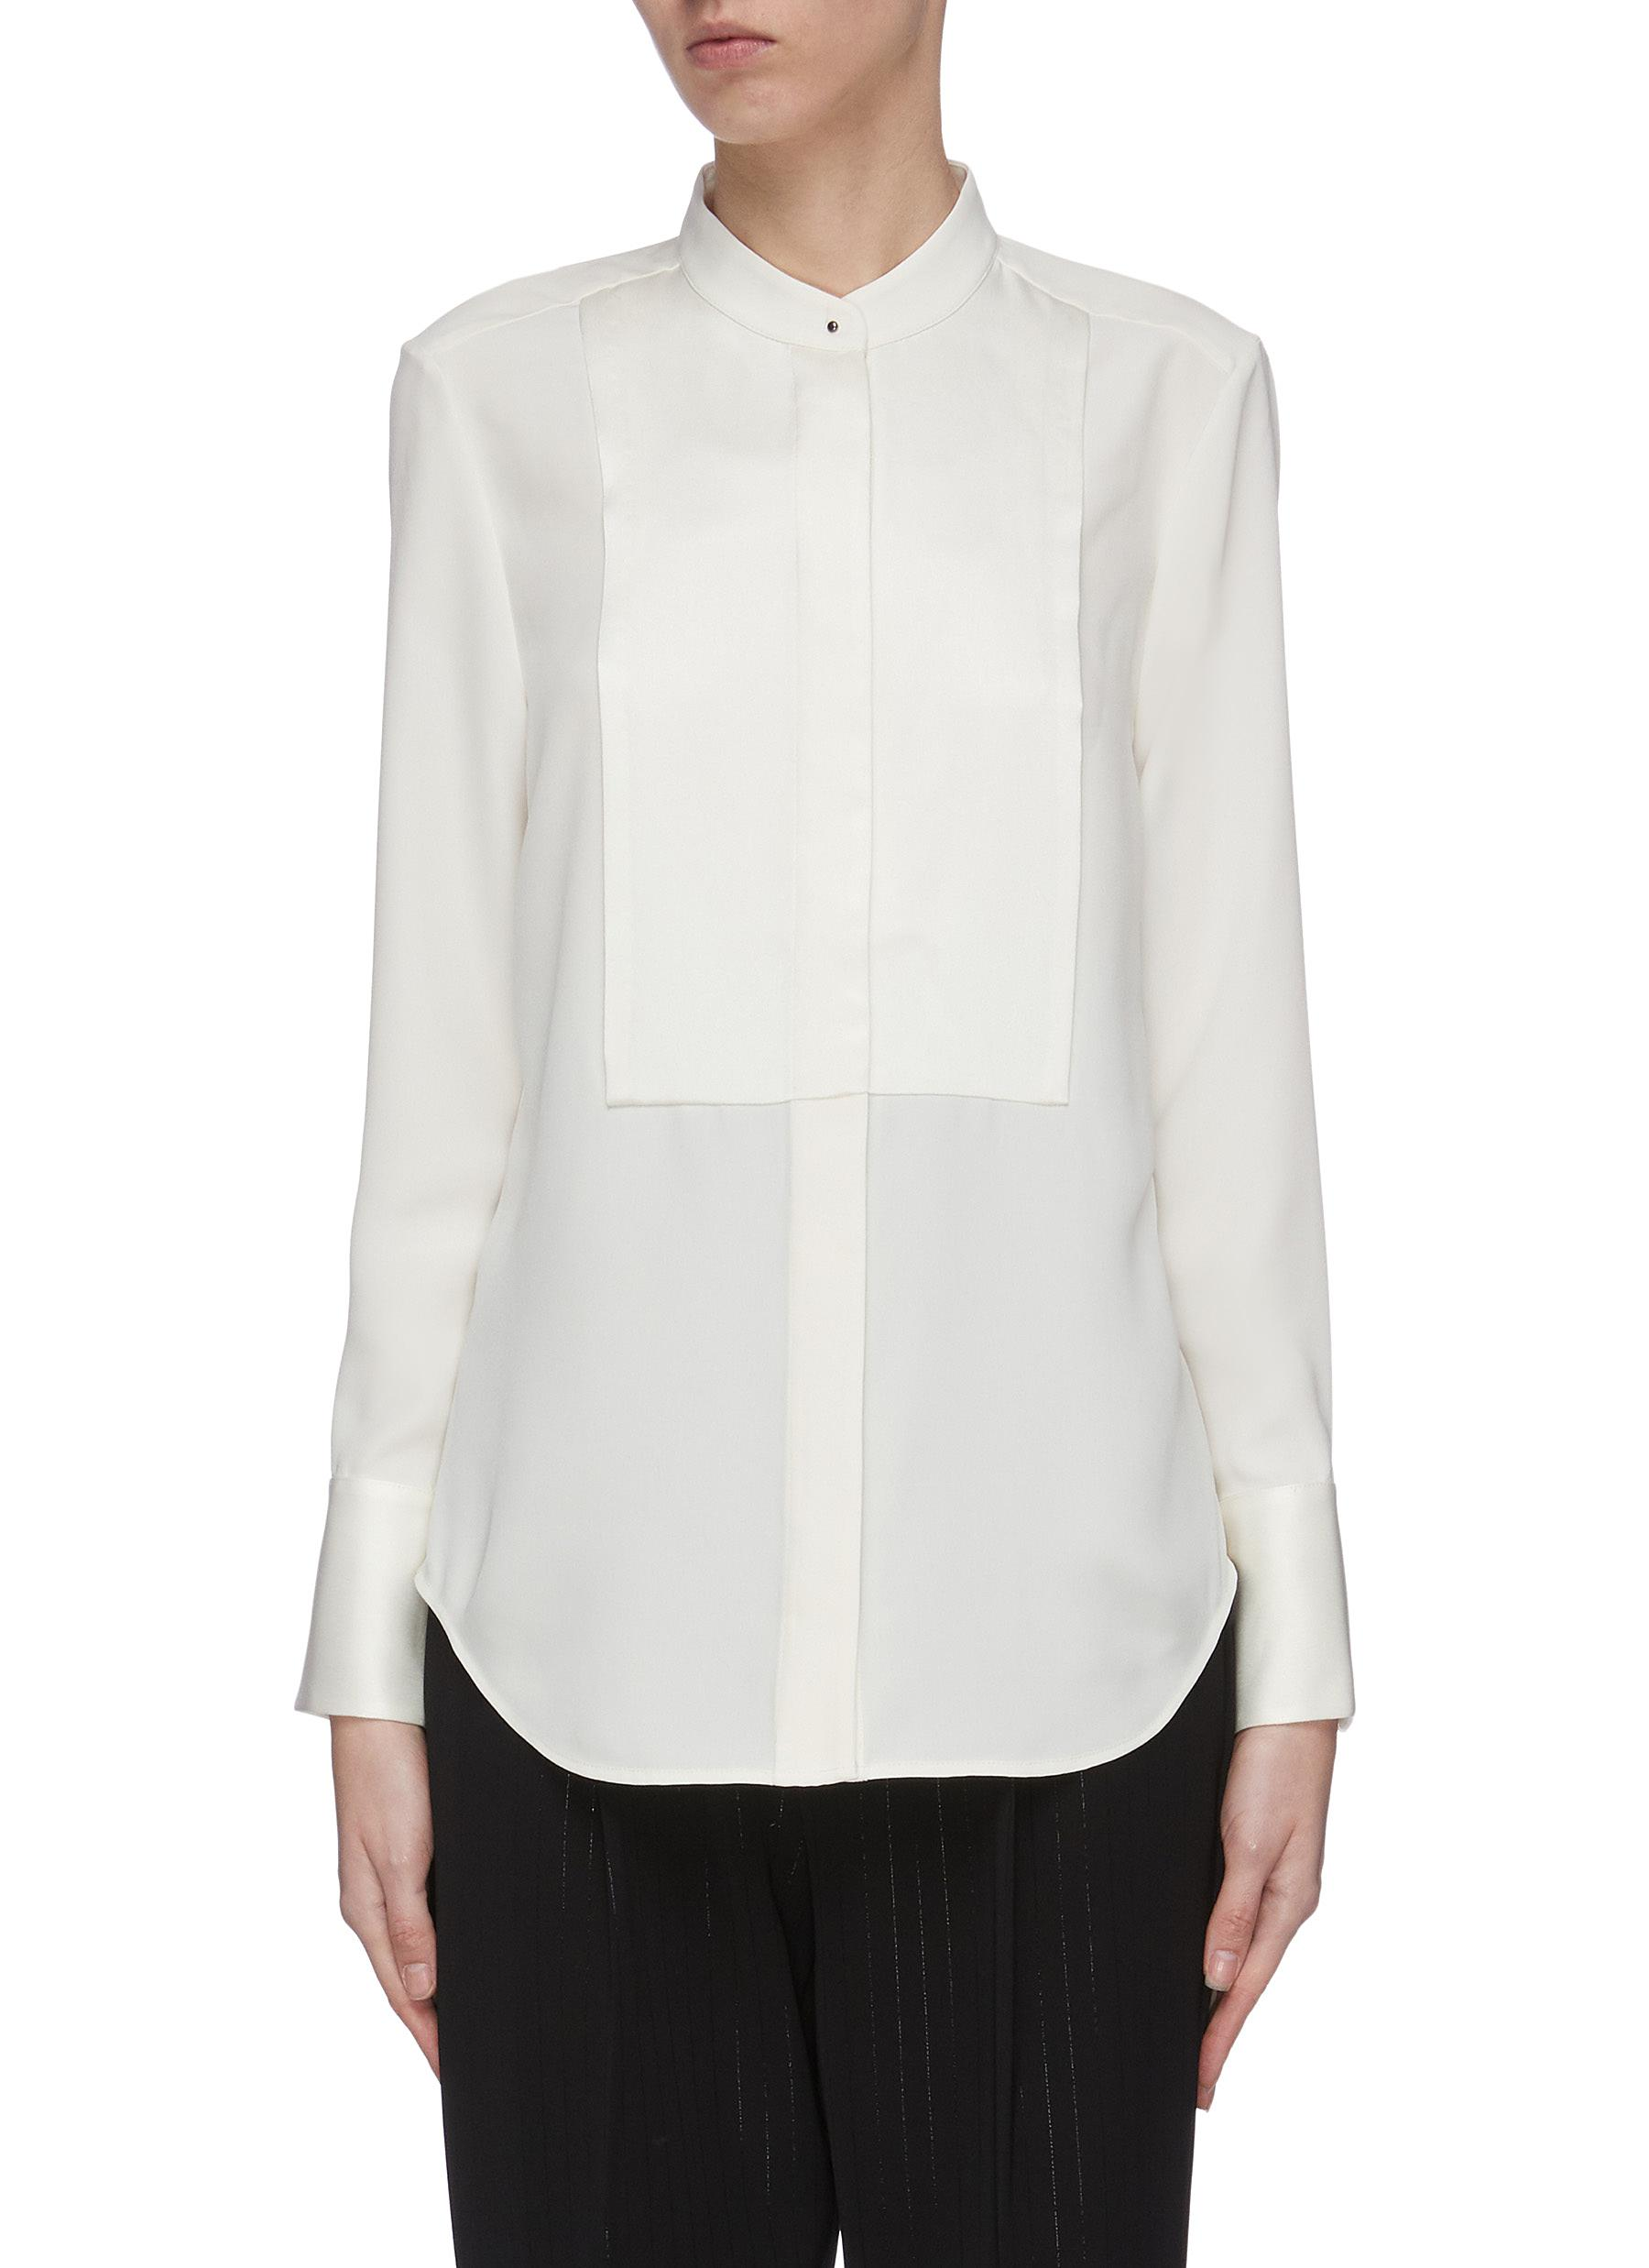 Buy Equipment Tops 'Hanee' placket shirt